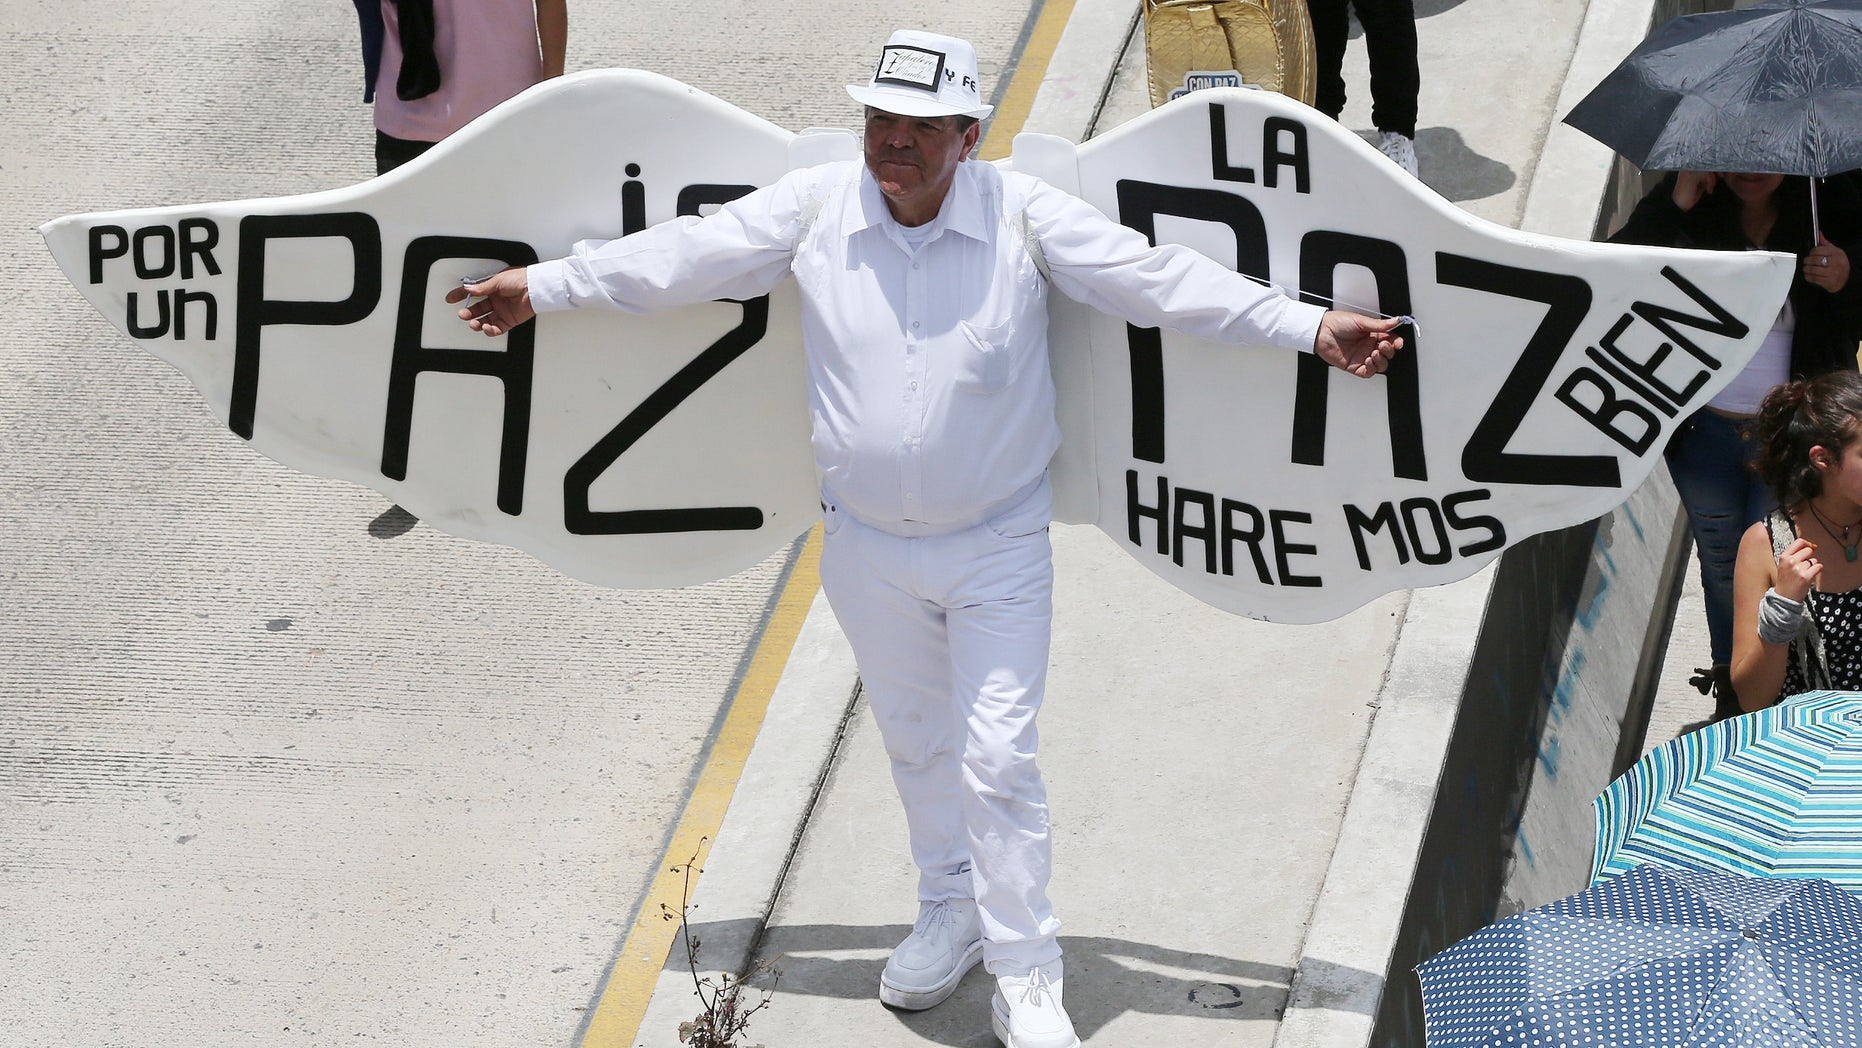 """A man, wearing angel wings, with a message that reads in Spanish; """"Peace will be good for the country,"""" takes part in a march for peace on the National Day of Memory and Solidarity with Victims of the Armed Conflict, in Bogota, Colombia, Thursday, April 9, 2015. Thousands of marchers waved white flags and paraded through cities across the country Thursday to support peace talks between the government and guerrillas, and pay tribute to victims of the nation's armed conflict. (AP Photo/Fernando Vergara)"""